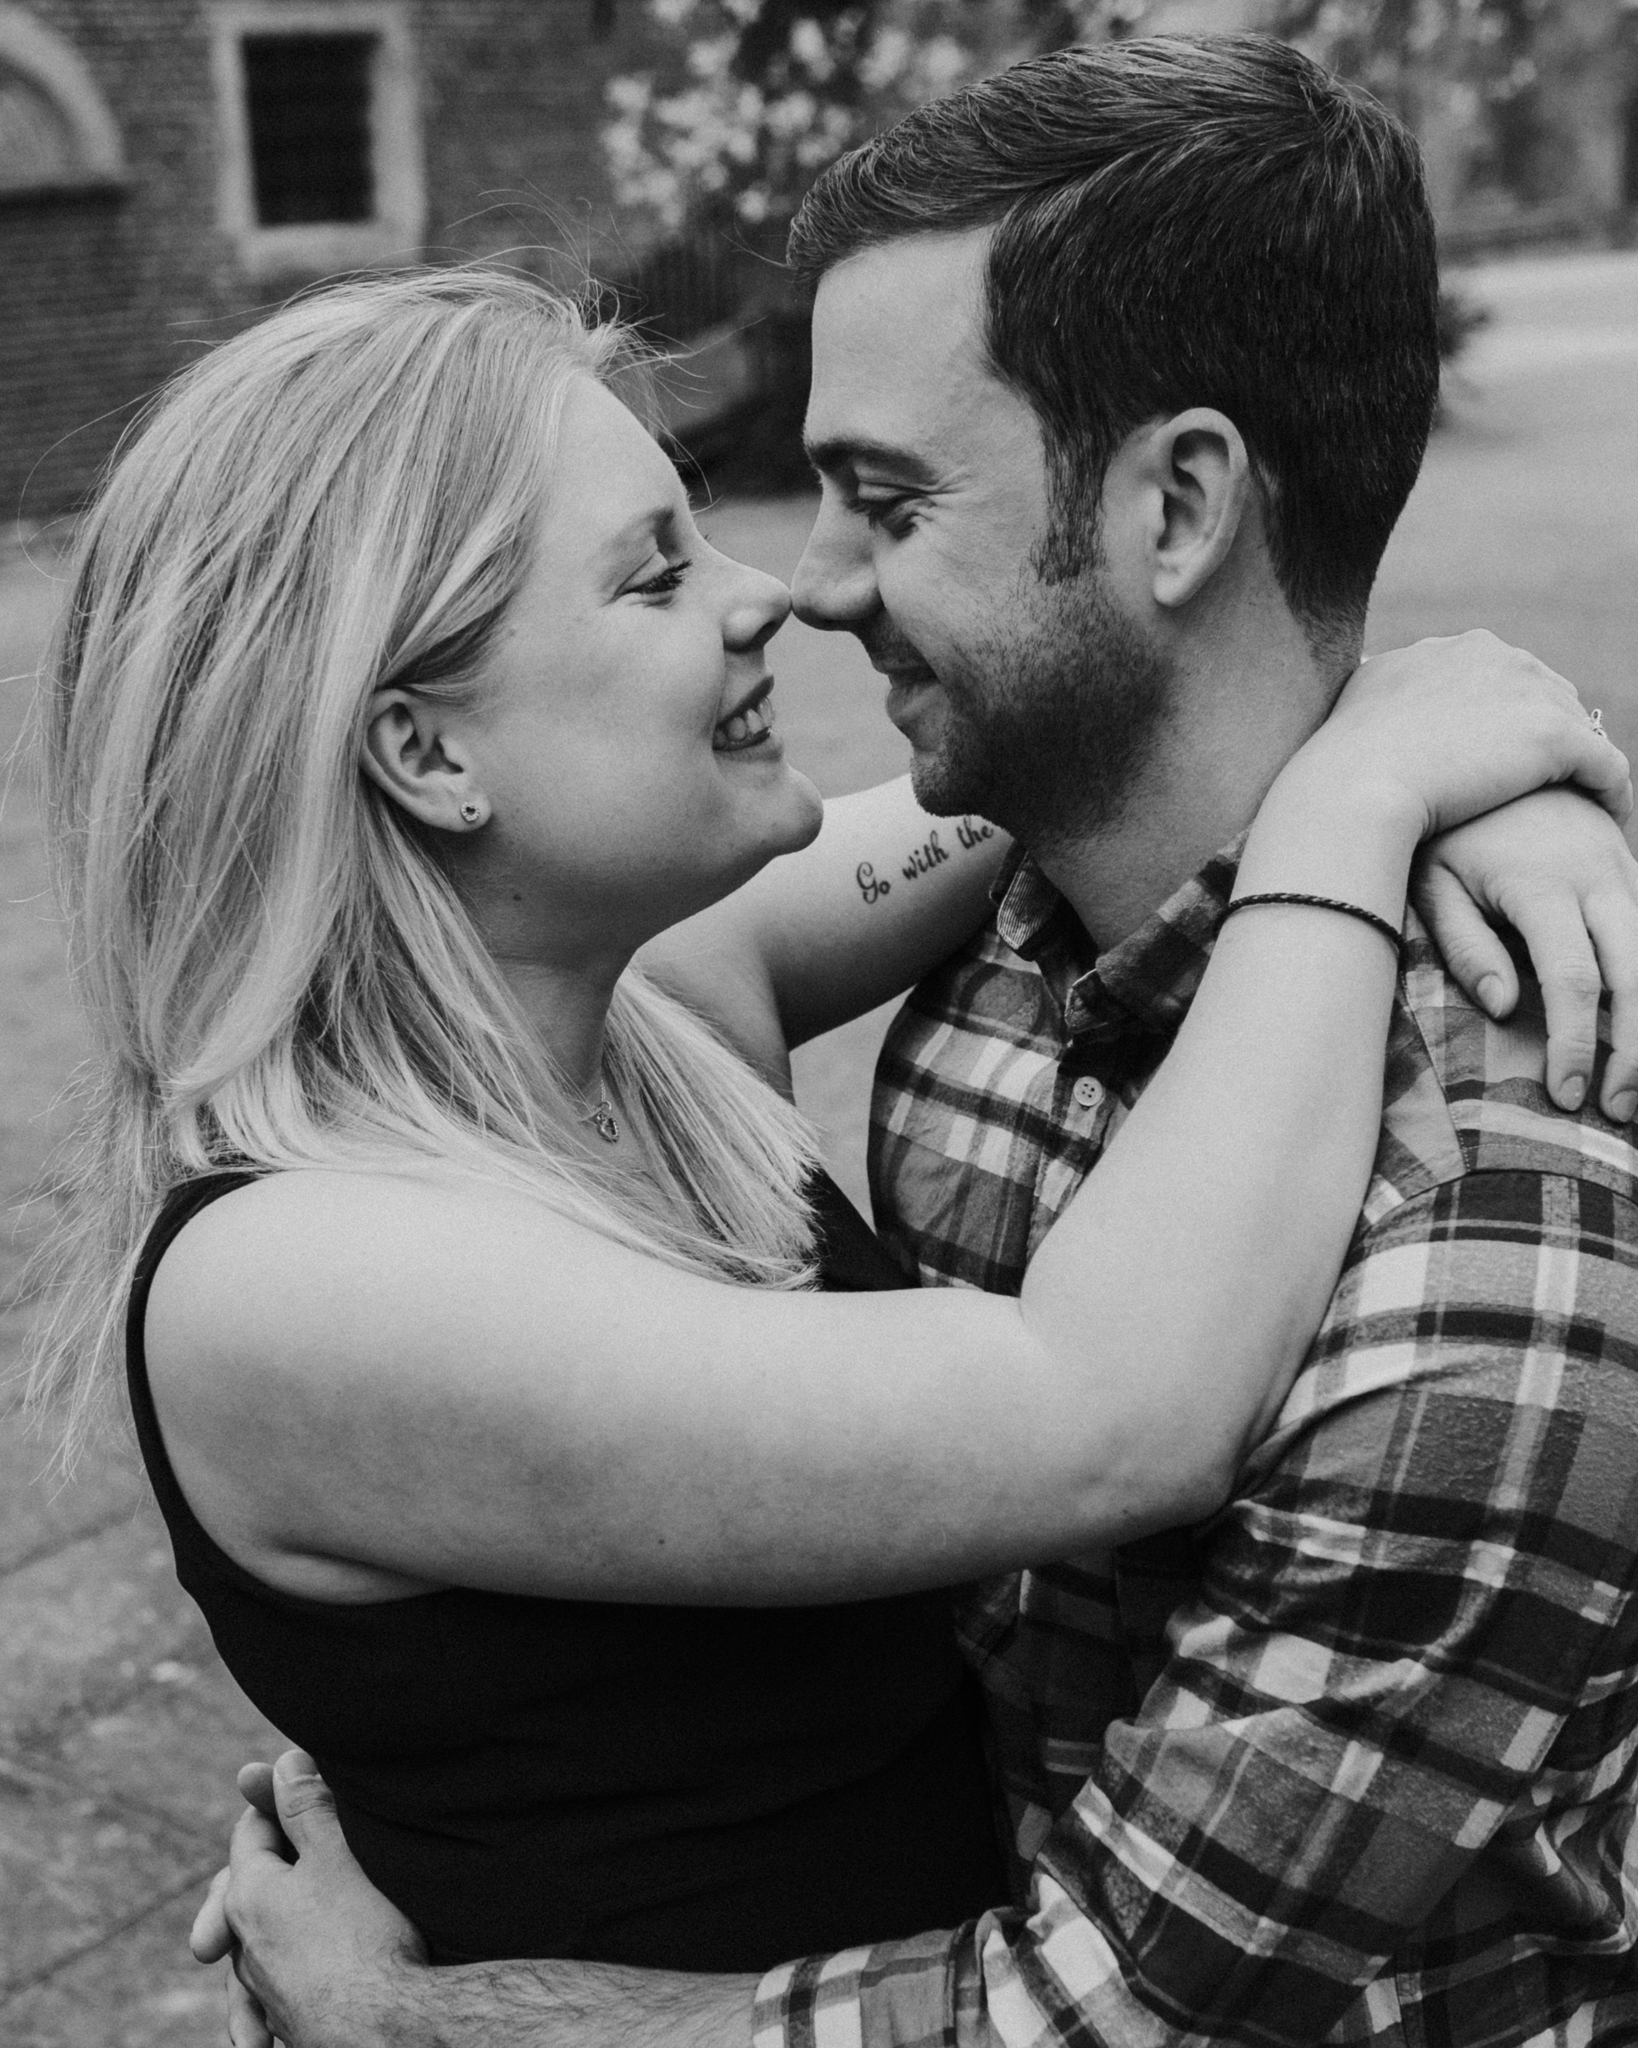 Engagement 2017 - 2018 (1 of 2)-2.jpg